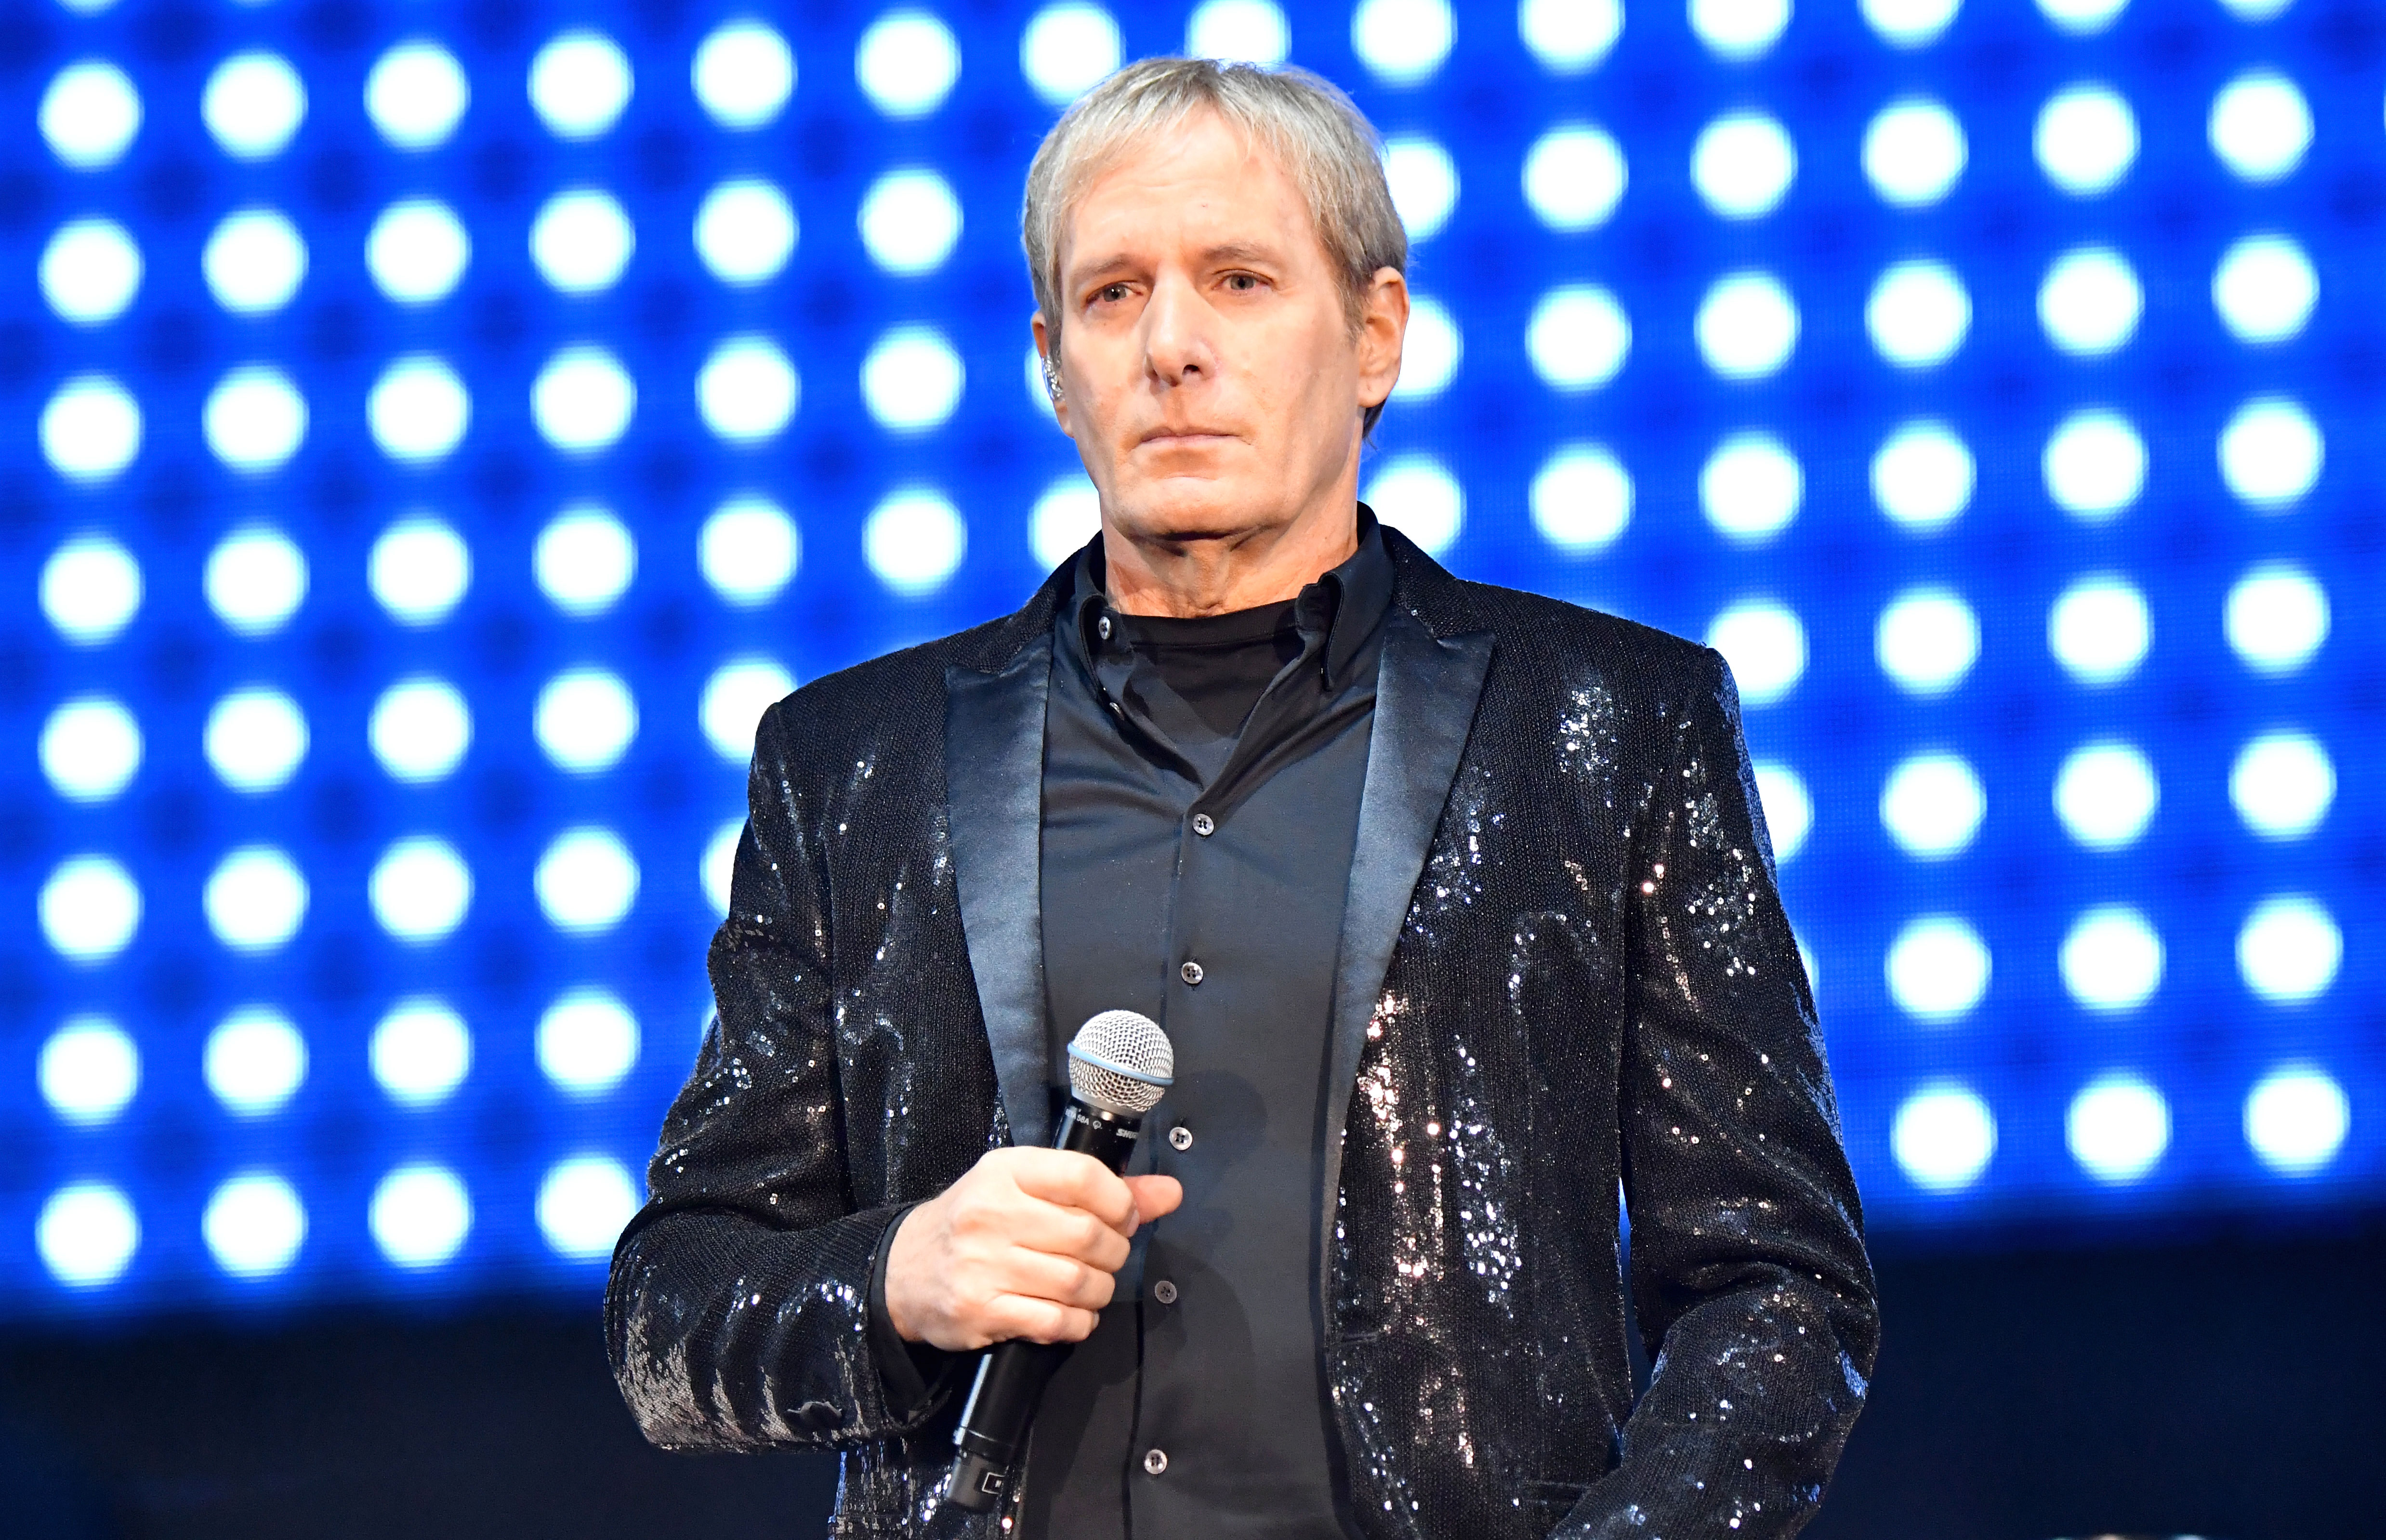 Michael Bolton: I Didn't Fall Asleep on TV! - Michael Bolton performs with The Lonely Island on the Colossal Stage during Clusterfest at Civic Center Plaza and The Bill Graham Civic Auditorium on June 1, 2018 in San Francisco, California.